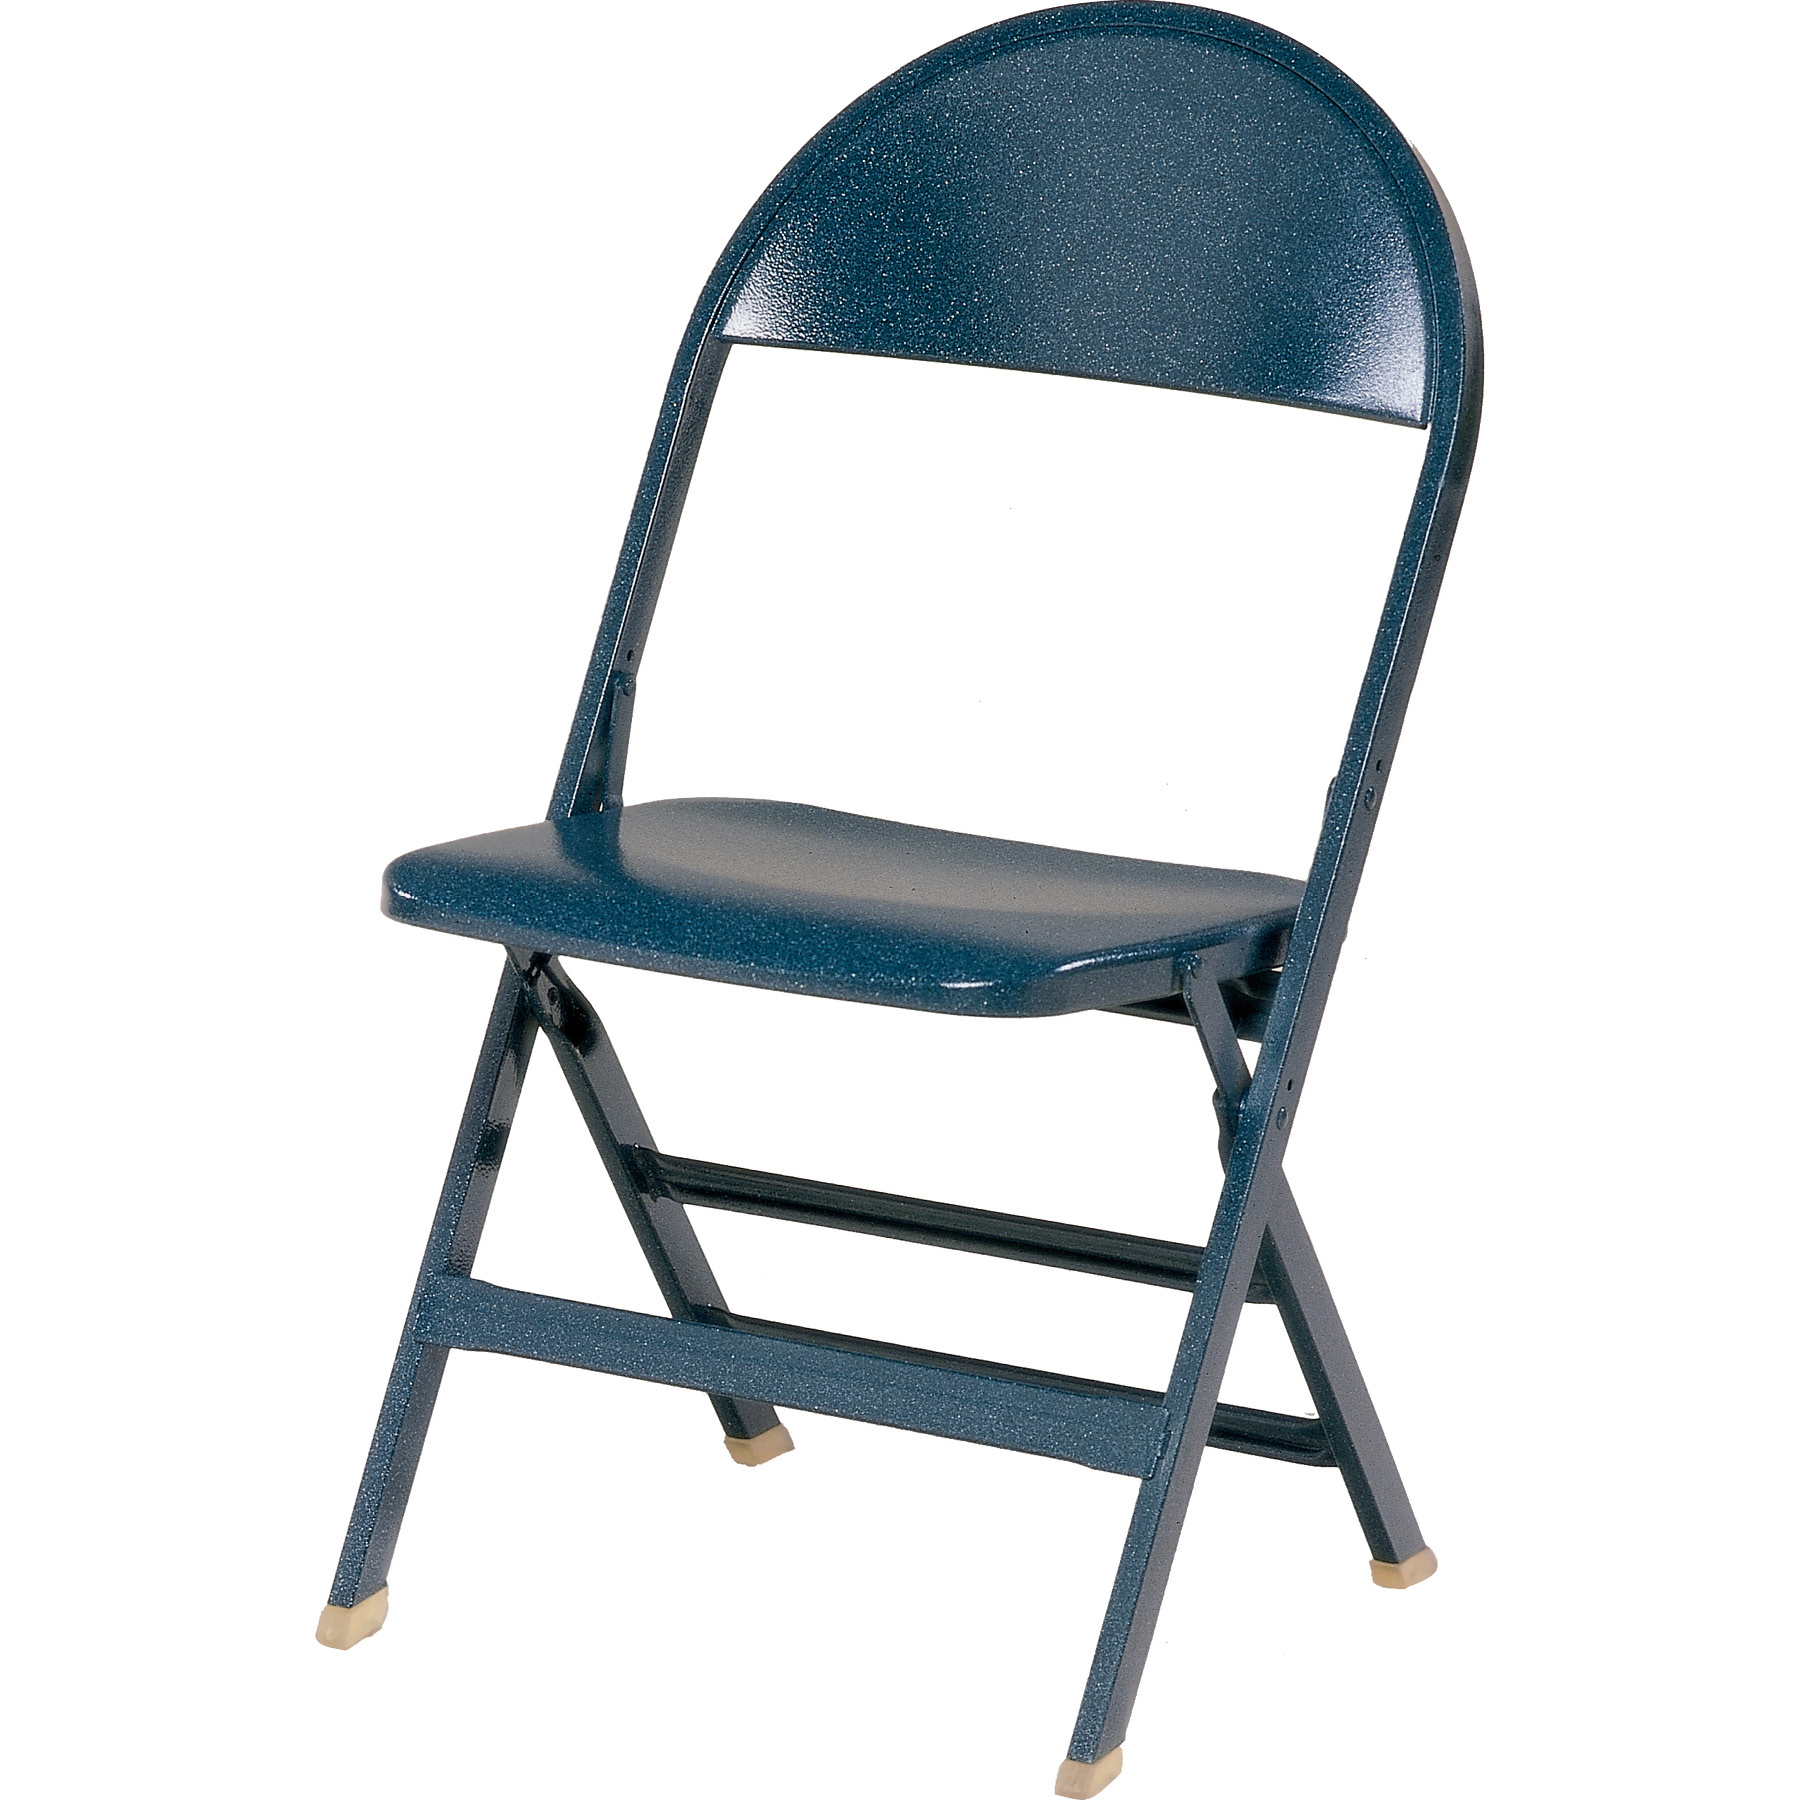 Brilliant 2237 Folding Chair Columbia Manufacturing Inc Unemploymentrelief Wooden Chair Designs For Living Room Unemploymentrelieforg